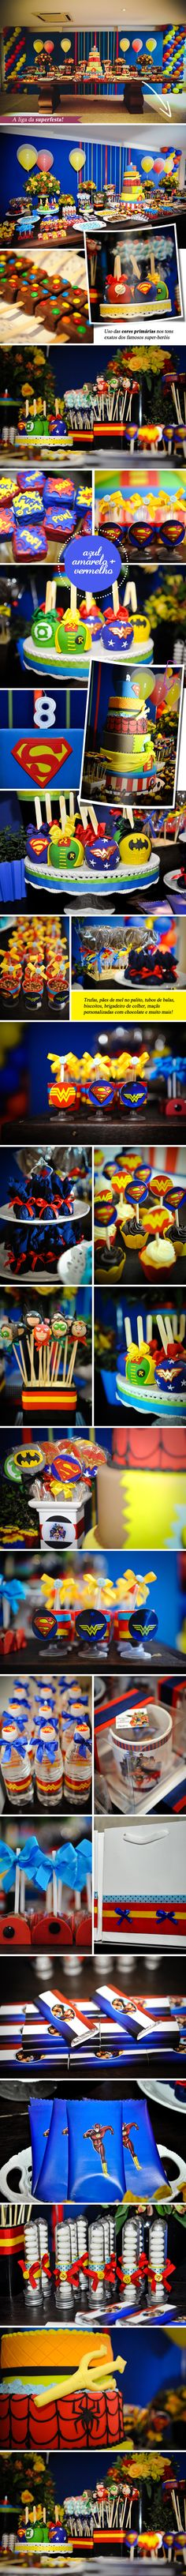 Superheroes Theme - Oh my wow! Look at that table. That's one amazing food table, and those cake pops are divine!